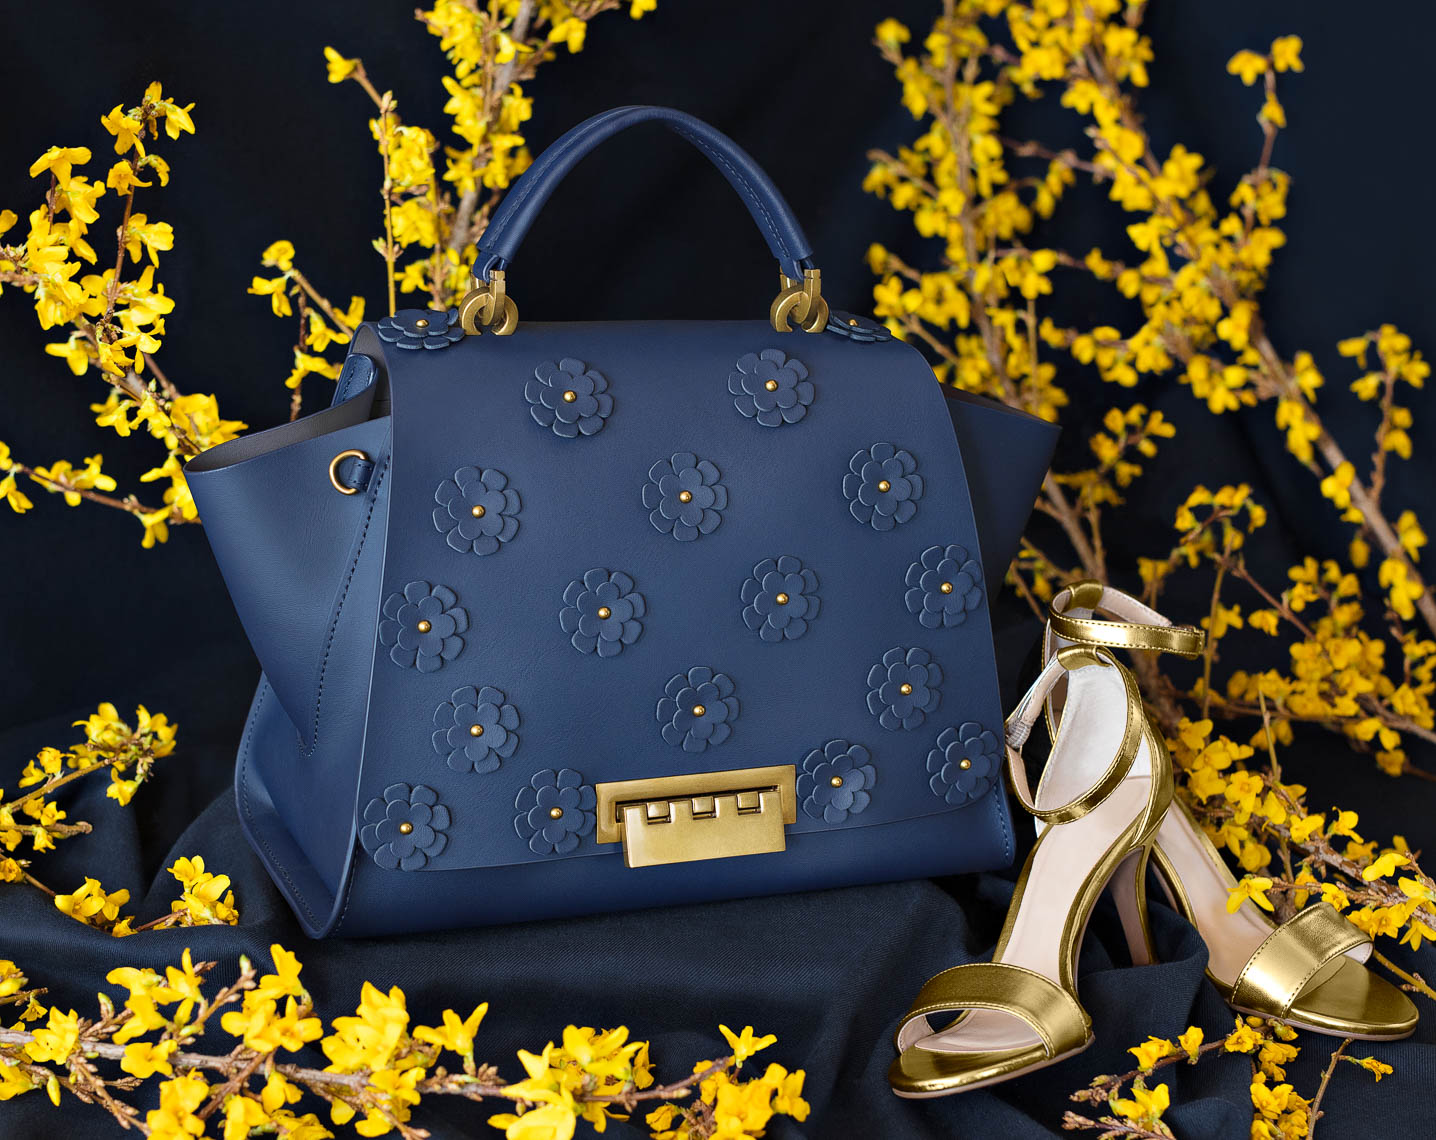 Dark blue leather tote and gold sandals